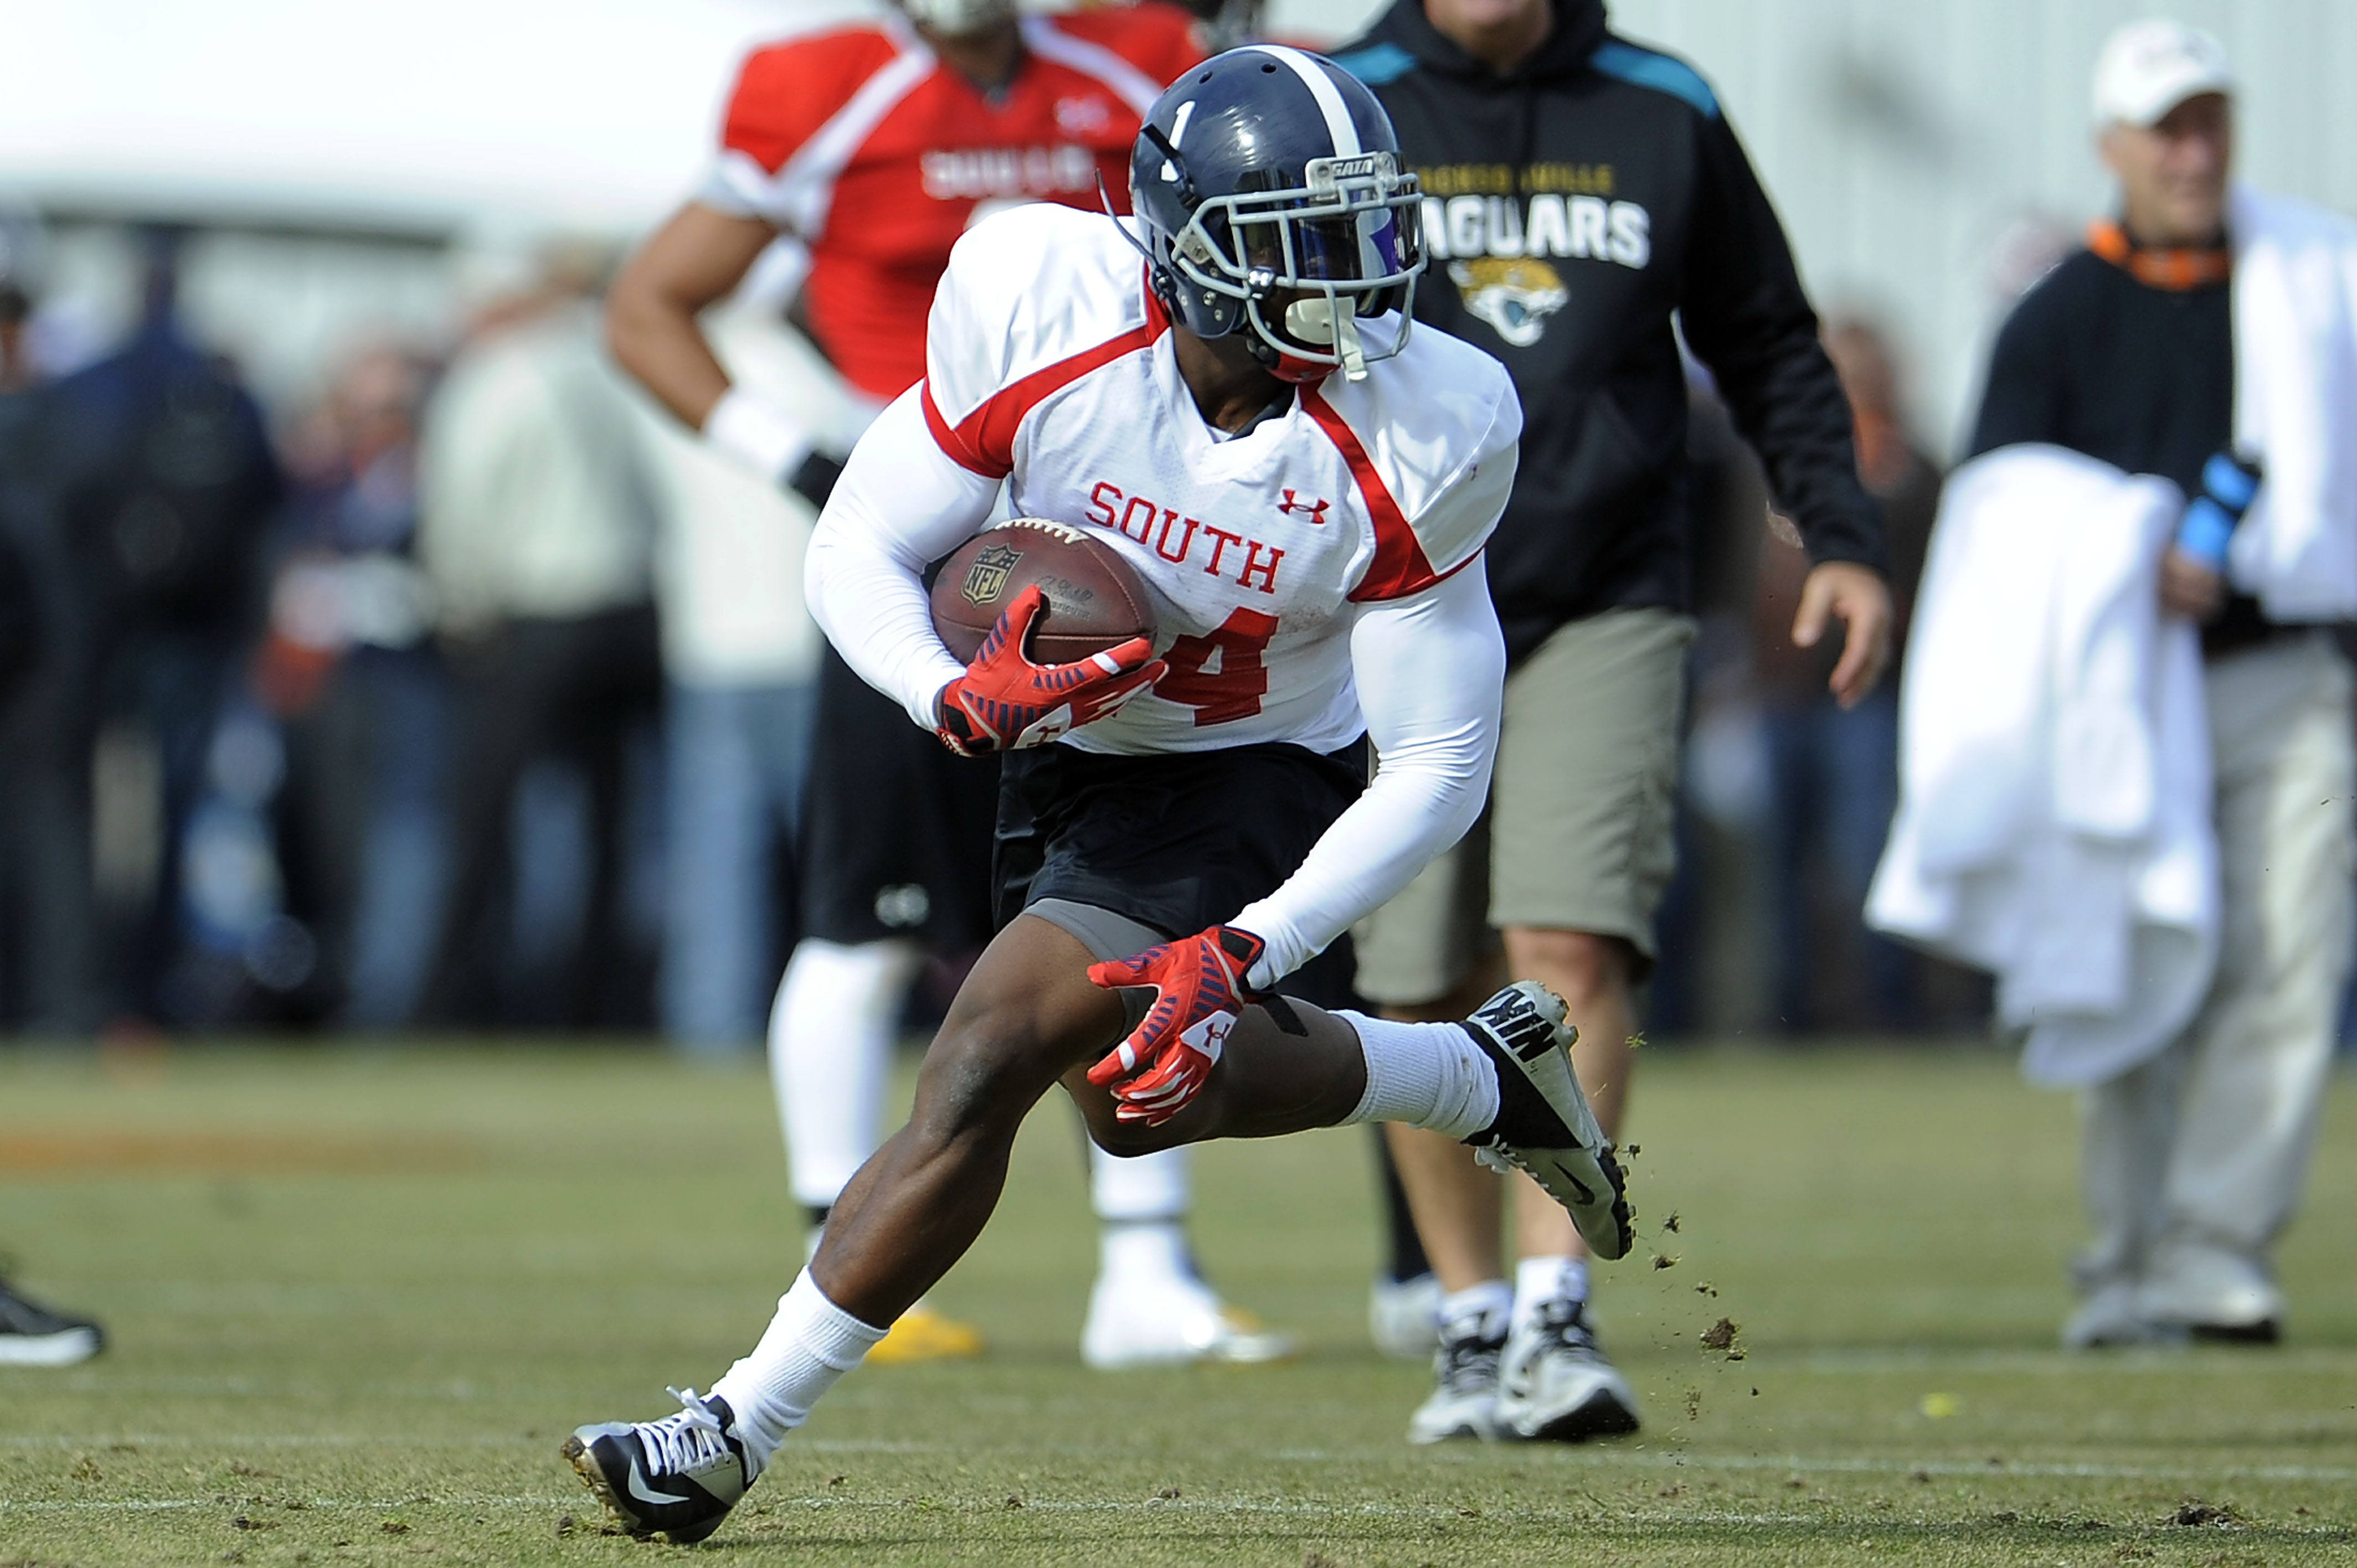 FAIRHOPE, AL - JANUARY 20:  Jerick McKinnon #24 of the South team runs for yards during a Senior Bowl practice session at Fairhope Stadium on January 20, 2014 in Fairhope, Alabama.  (Photo by Stacy Revere/Getty Images)